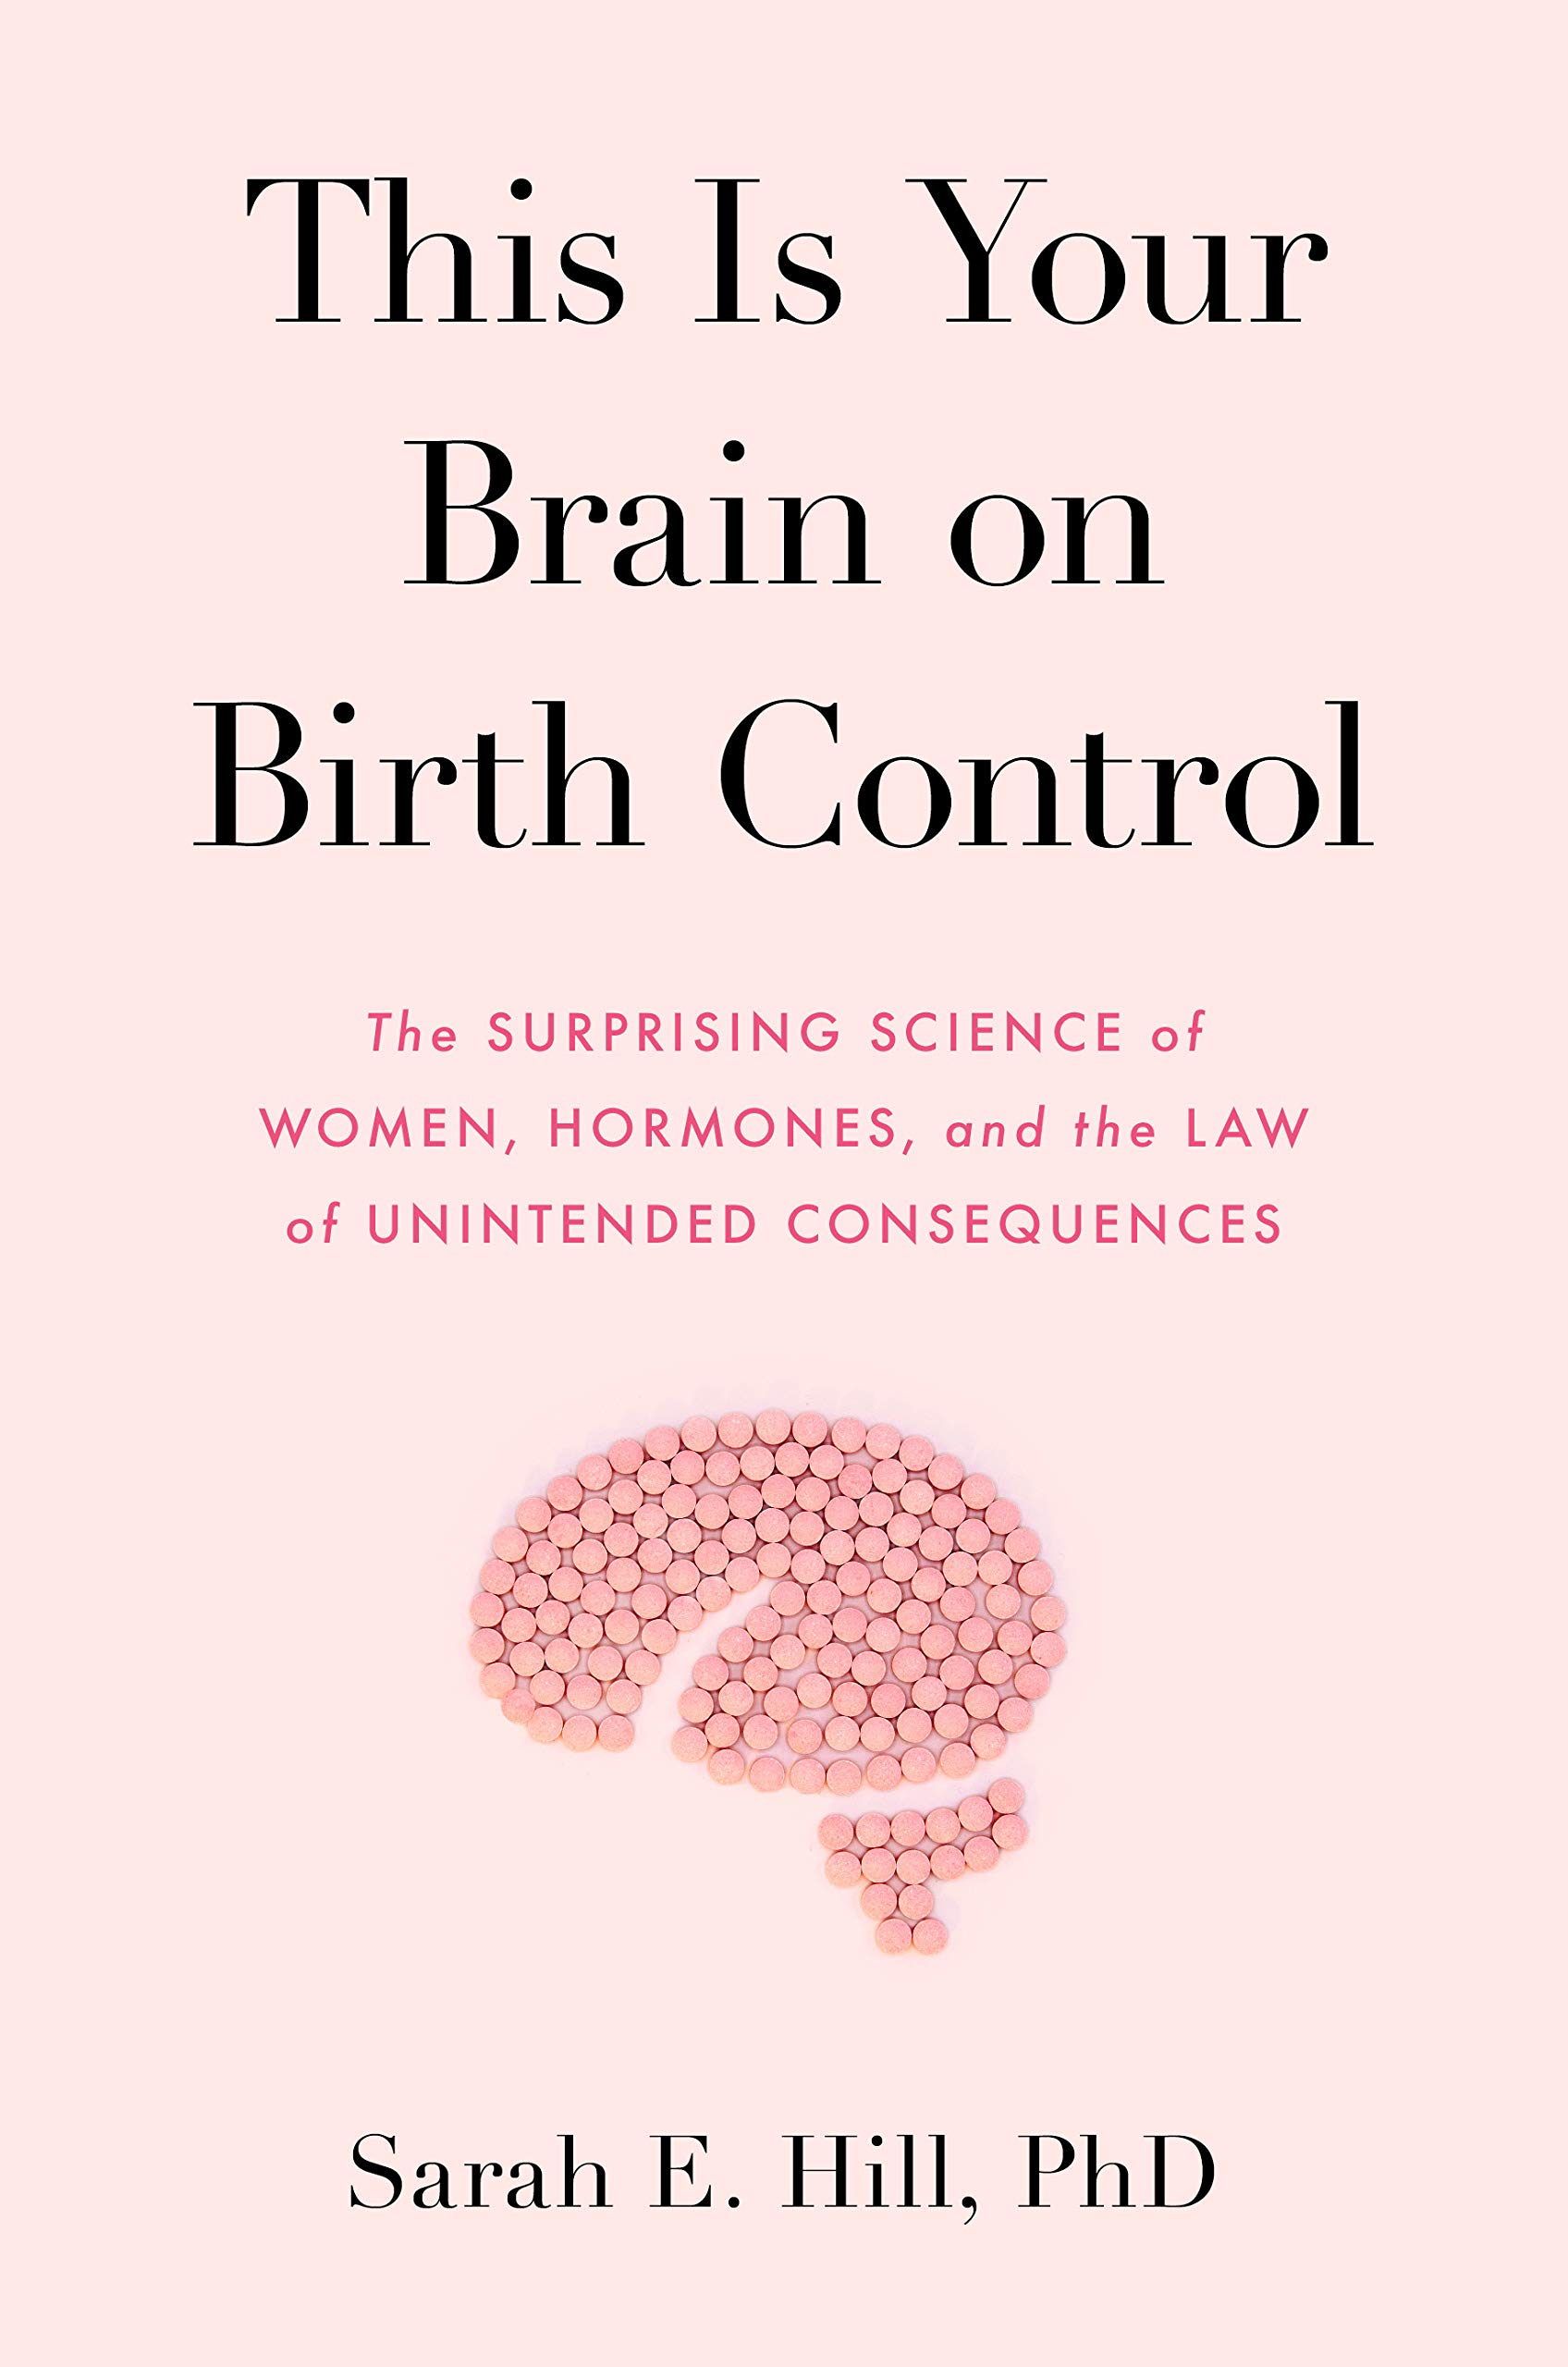 This Is Your Brain on Birth Control: The Surprising Science of Women, Hormones, and the Law of Unintended Consequences by Avery